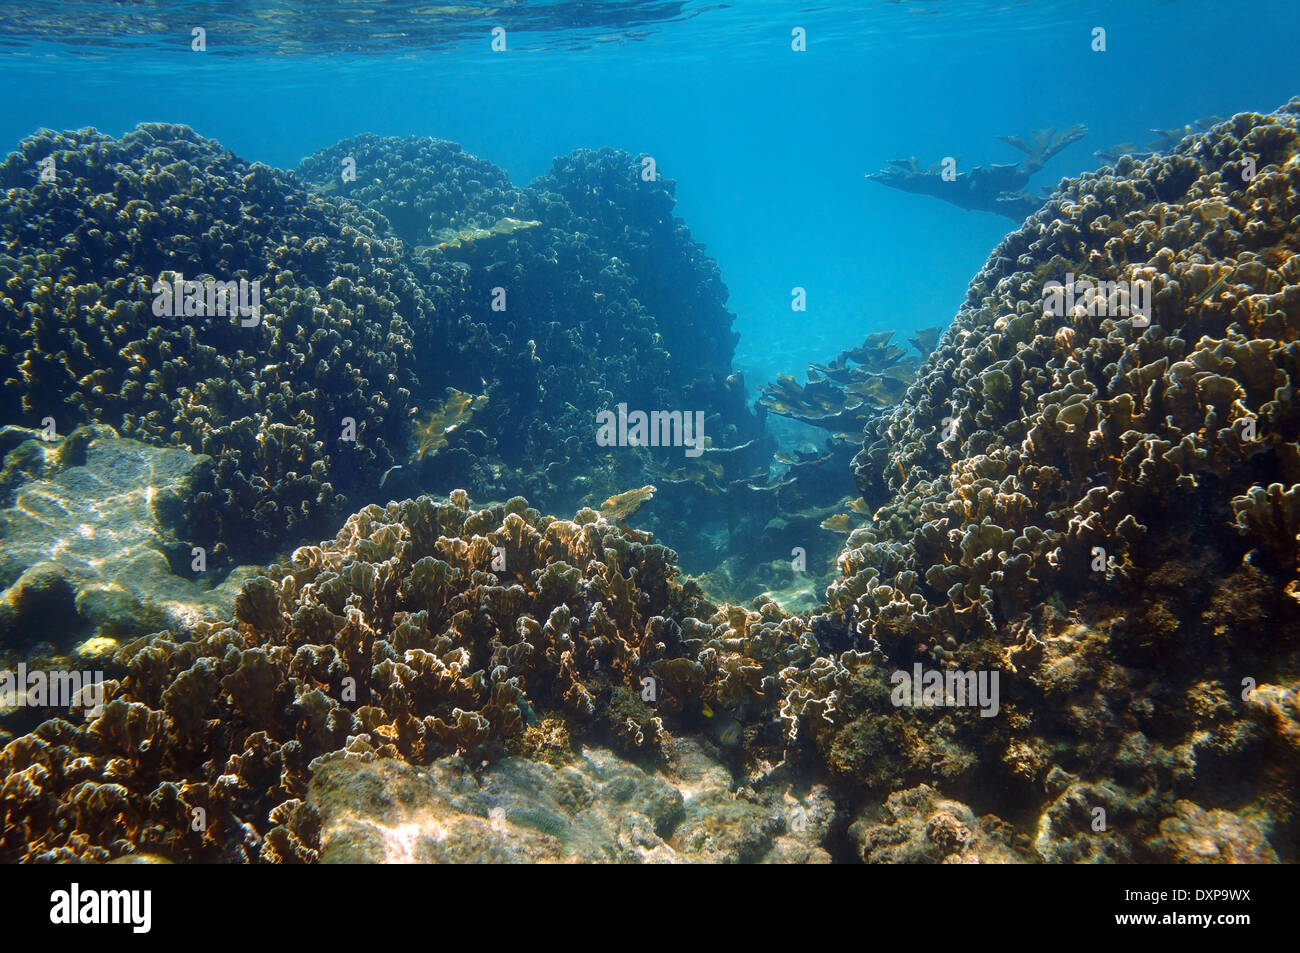 Underwater view of an healthy coral reef in the Caribbean sea with blade fire coral colonies, Yucatan, Mexico - Stock Image